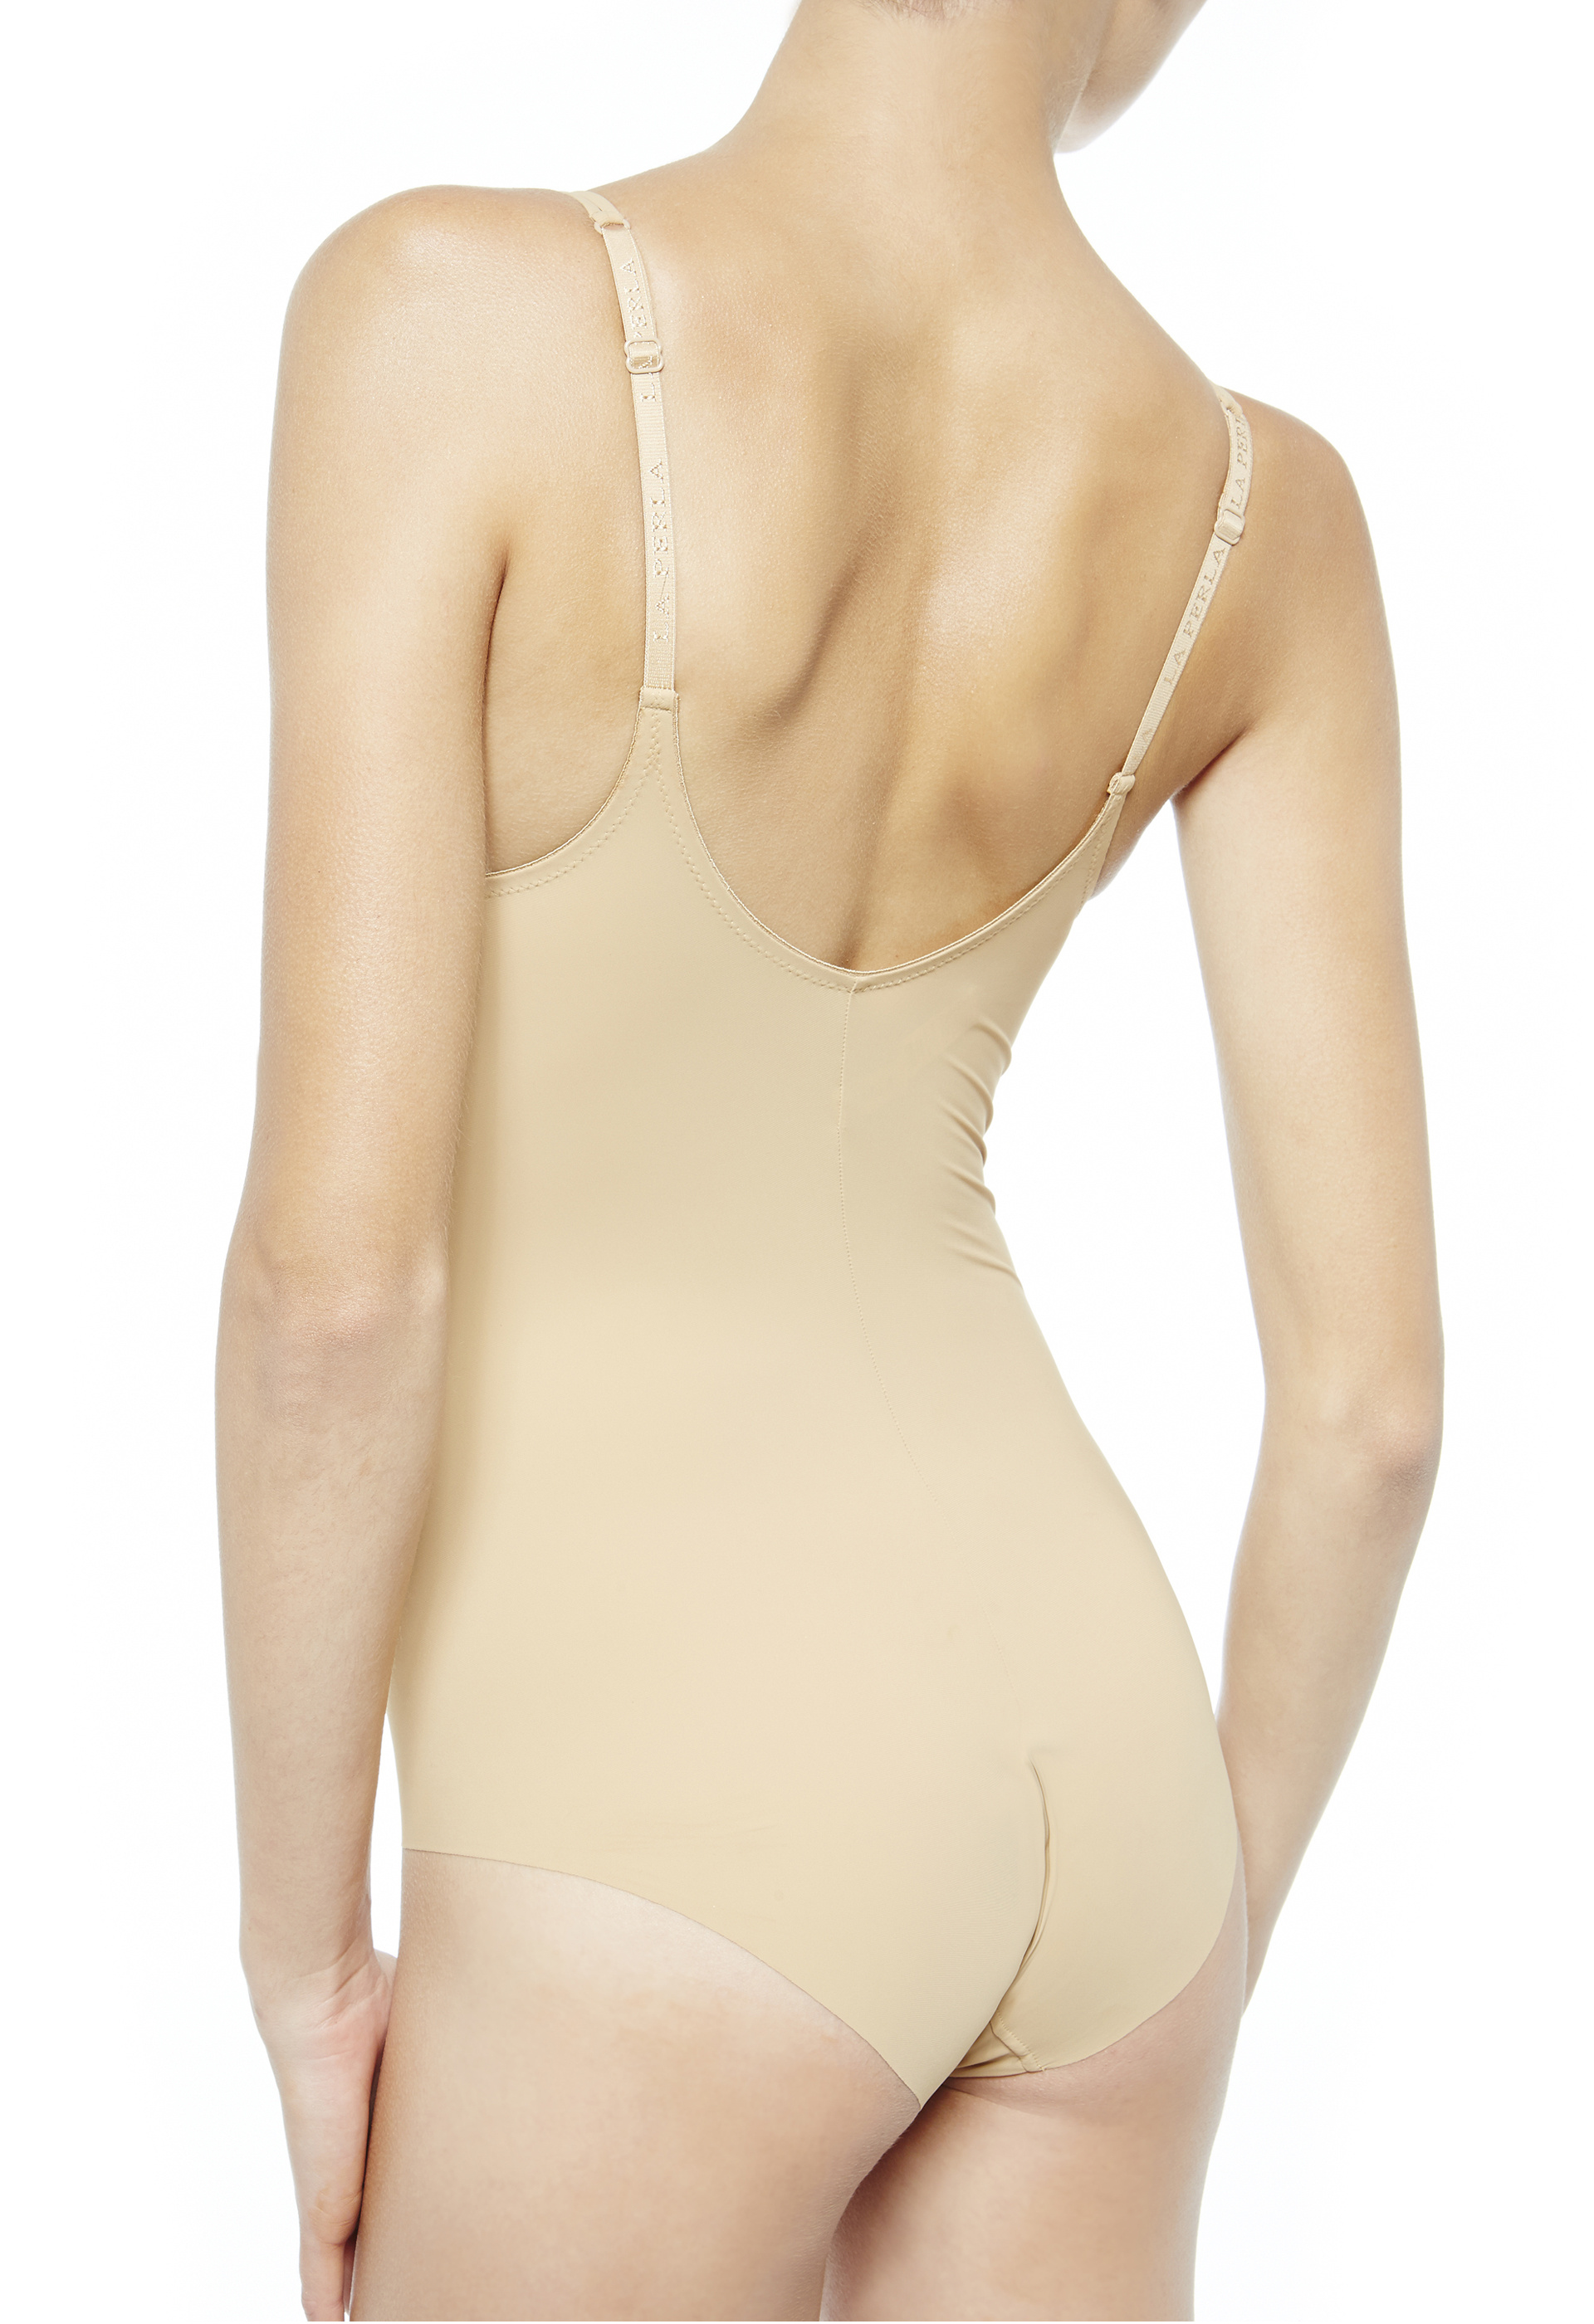 laperla bodysuits 14-27